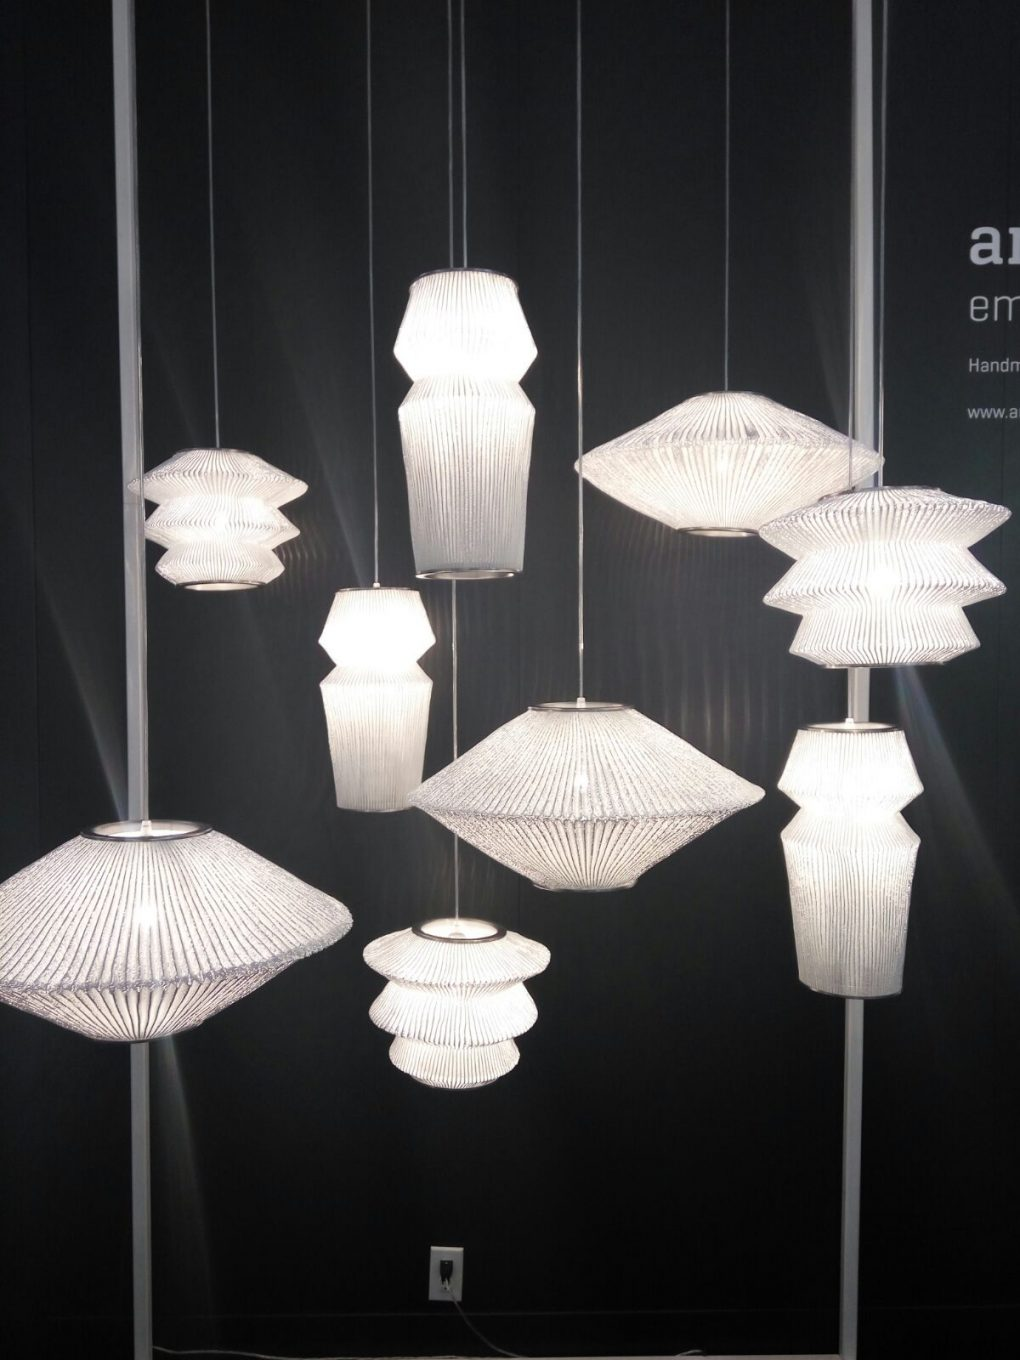 Trend Alert Discover the Best Lighting Brands at ICFF 2017 4 lighting brands Trend Alert: Discover the Best Lighting Brands at ICFF 2017 Trend Alert Discover the Best Lighting Brands at ICFF 2017 8